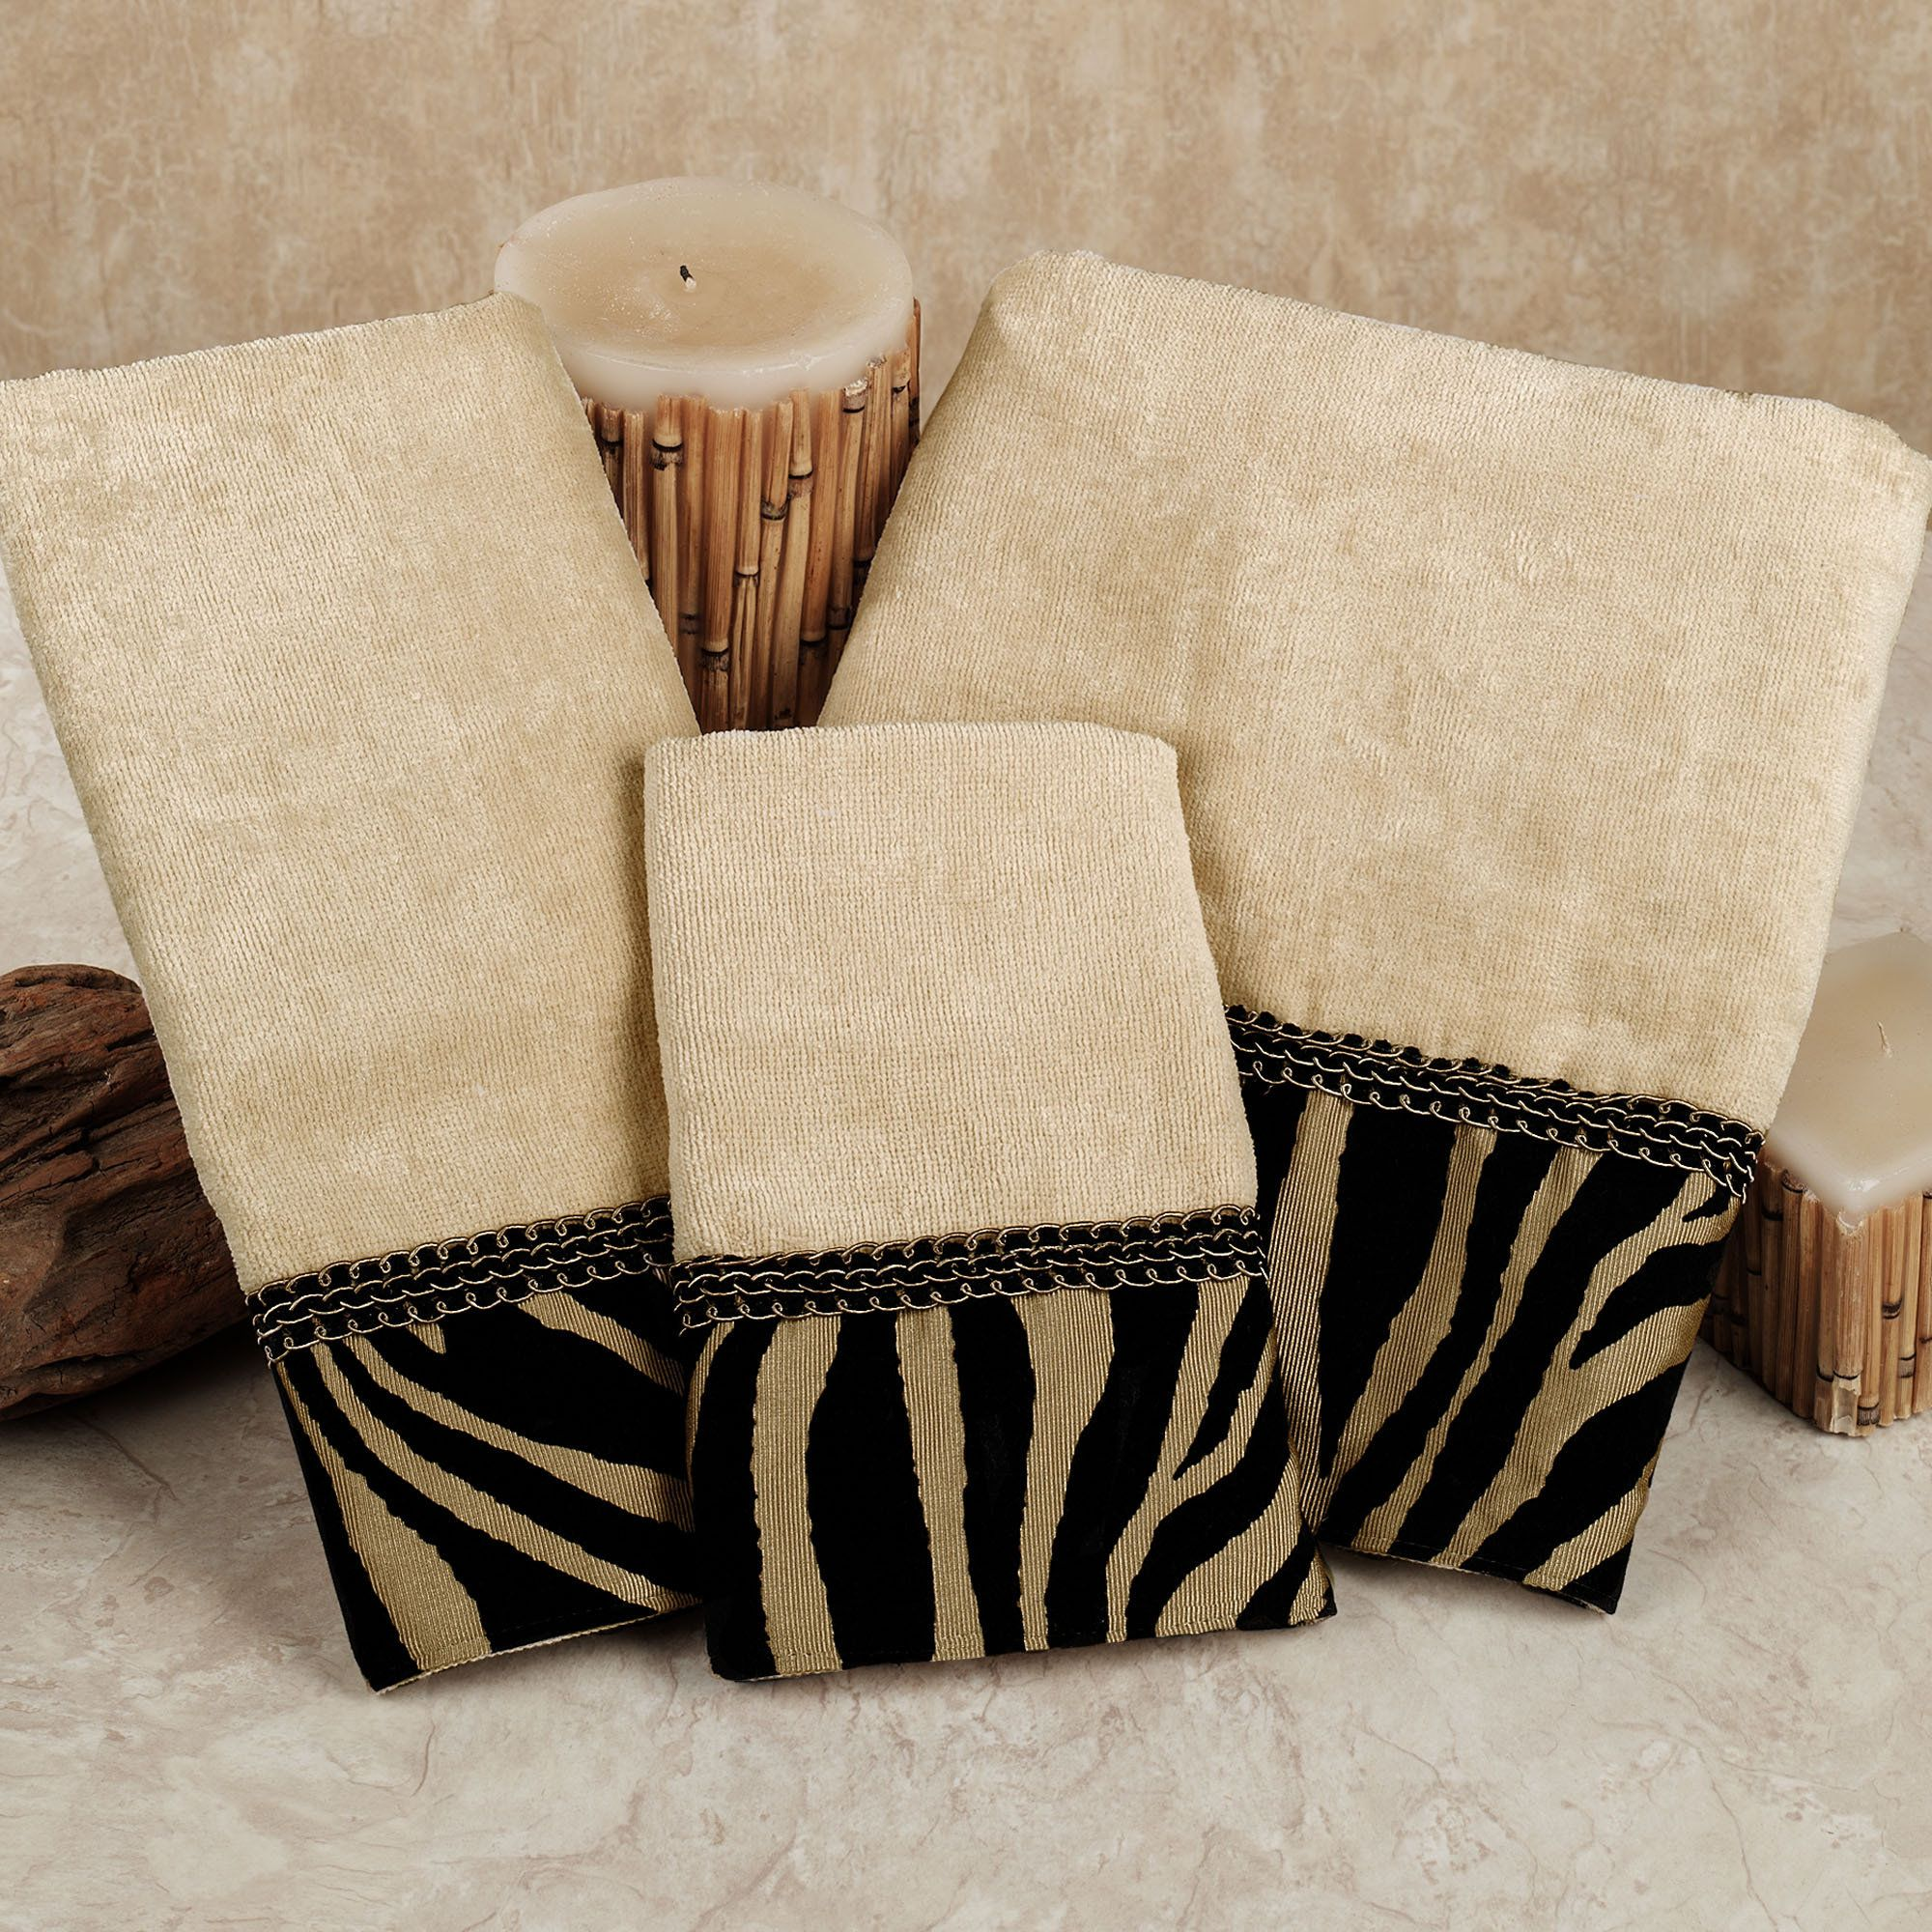 zuma zebra decorative towel set decorative towels towels and house